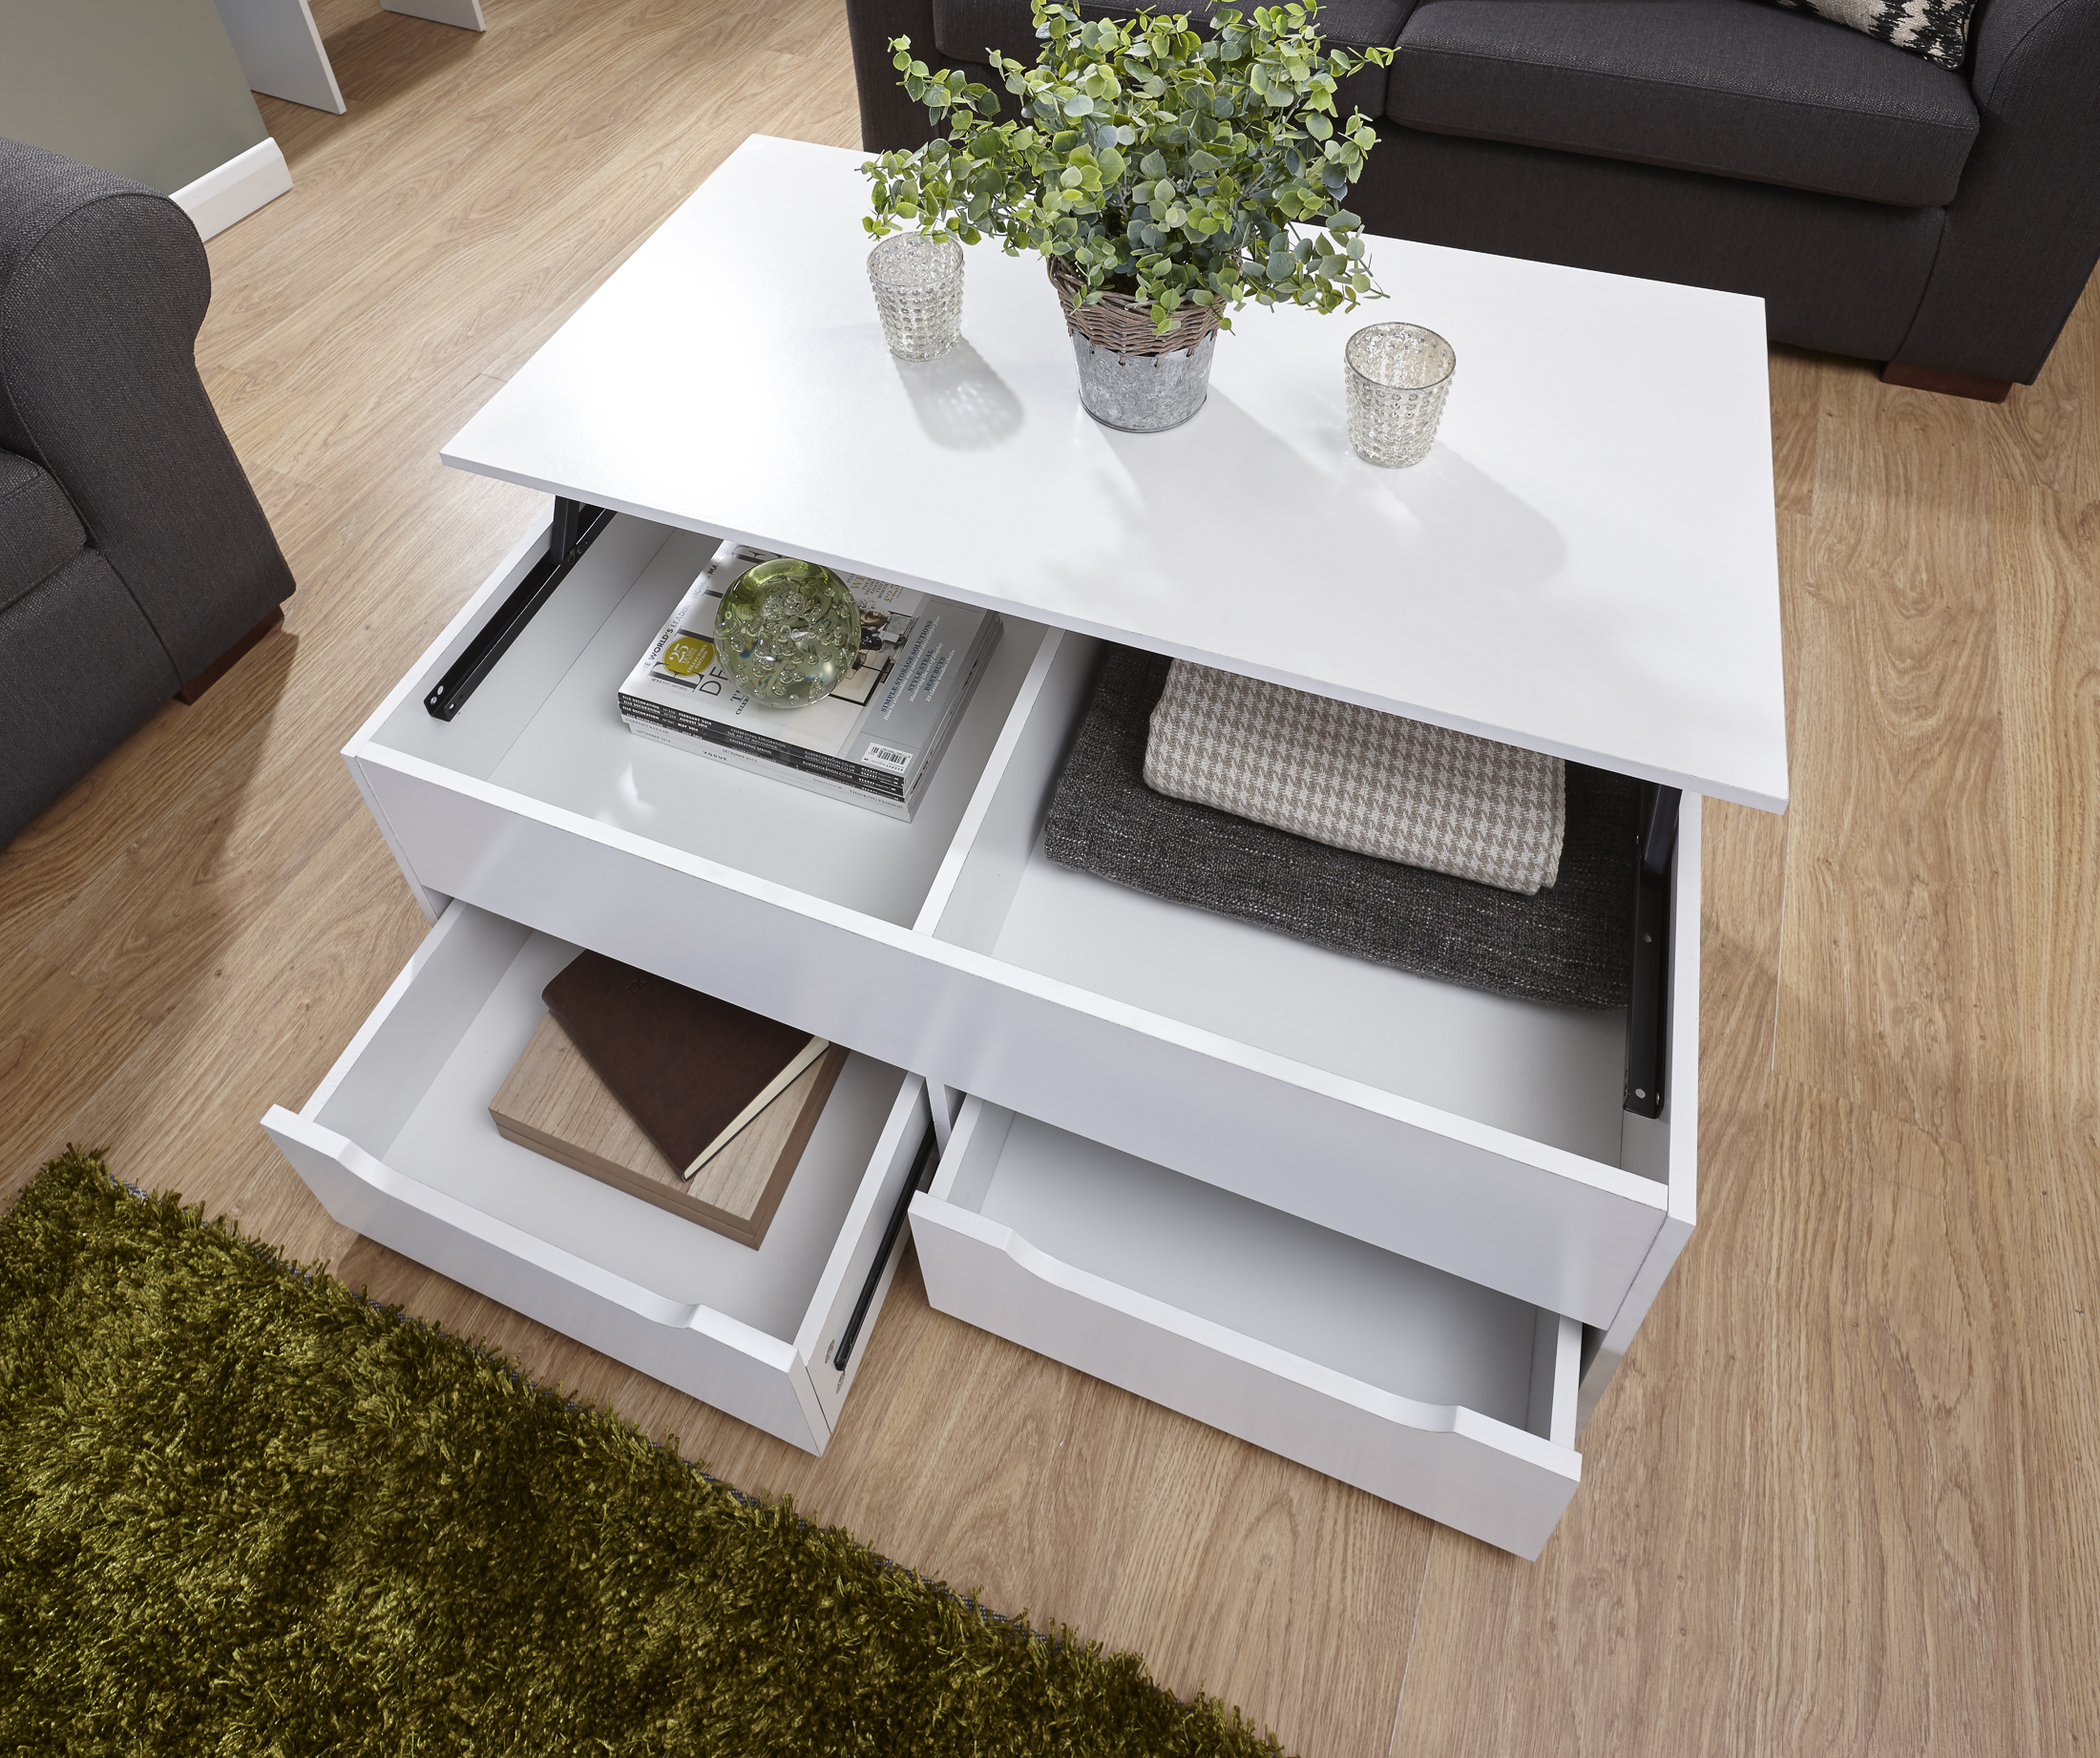 details about new ultimate storage coffee table living room in oak white walnut espresso